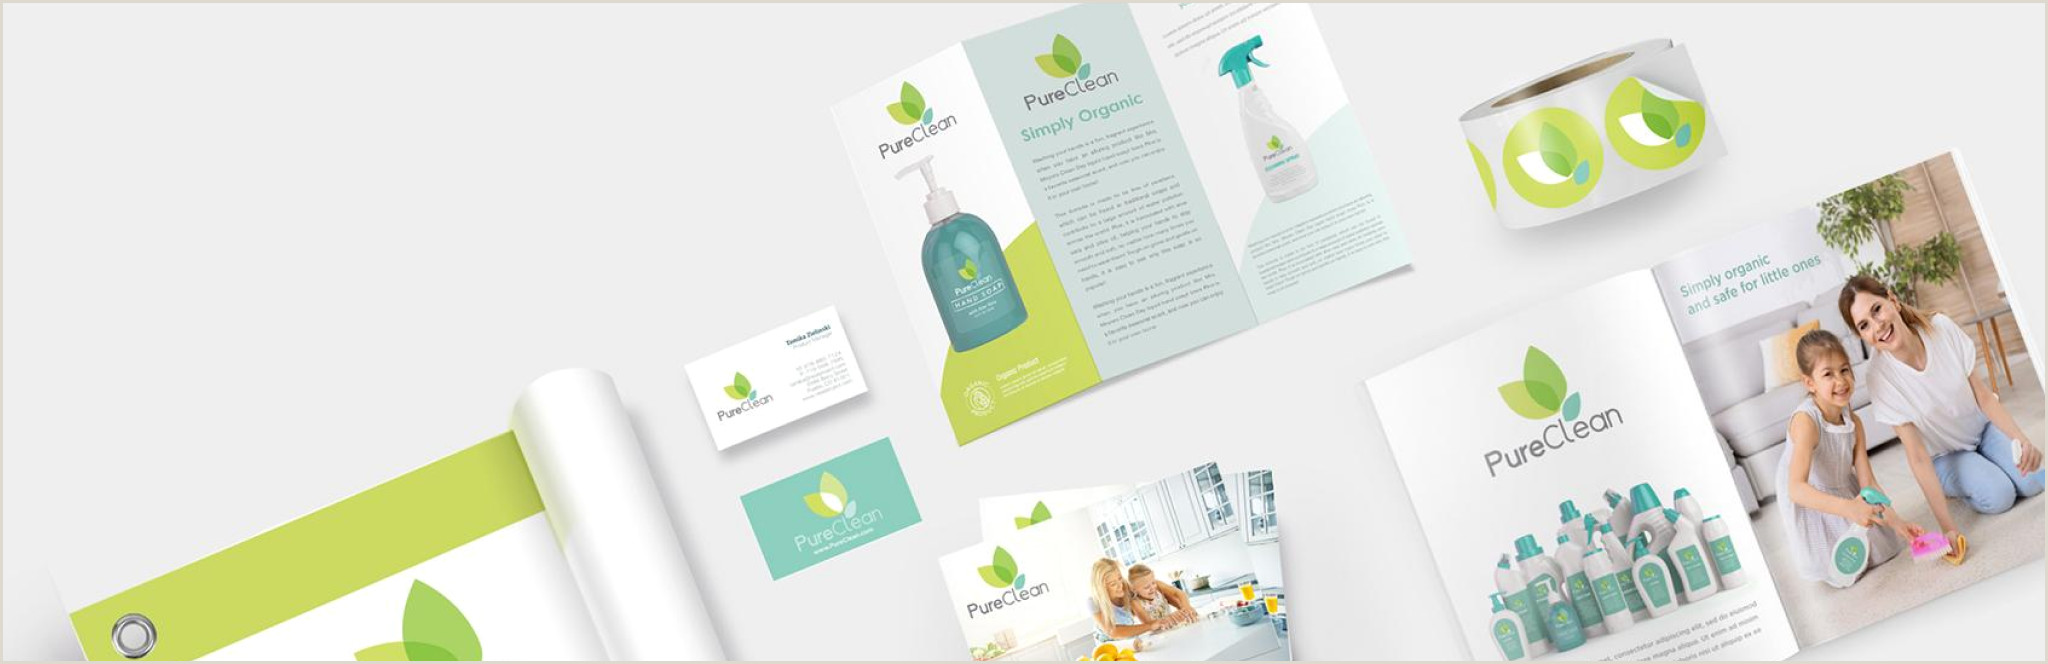 How To Format A Business Card Printplace High Quality Line Printing Services